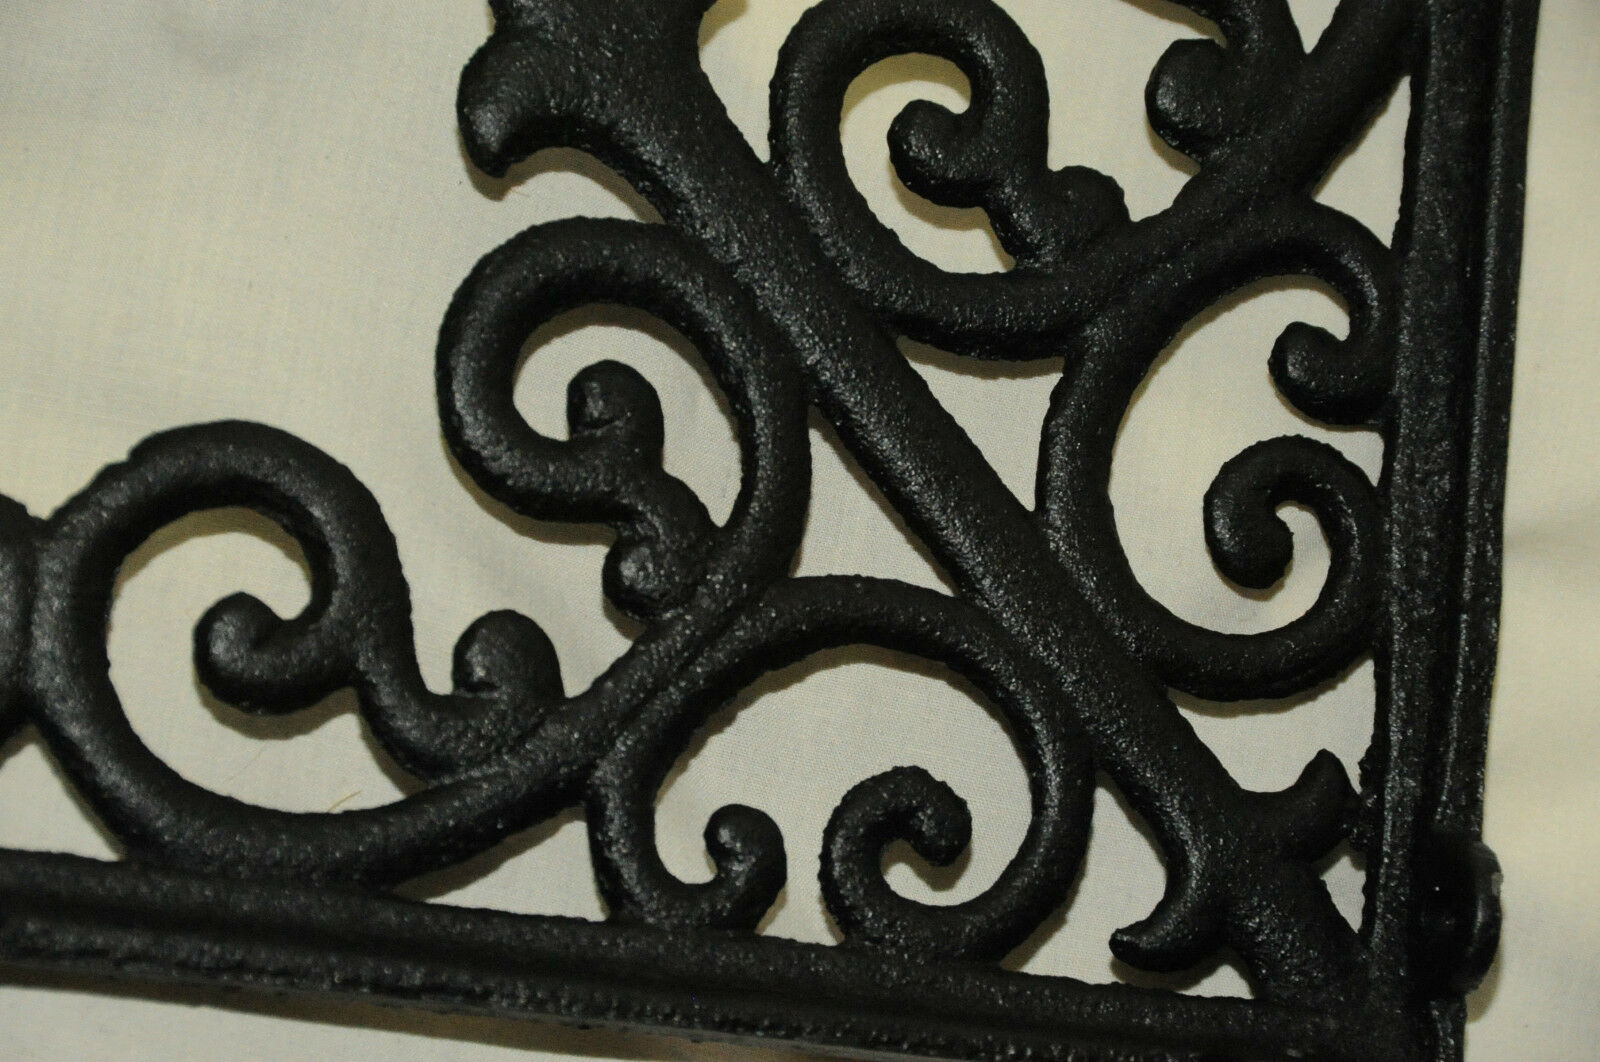 NEW (2) Tuscan Blk Iron Corbels shelf brackets, counter top support, cornices